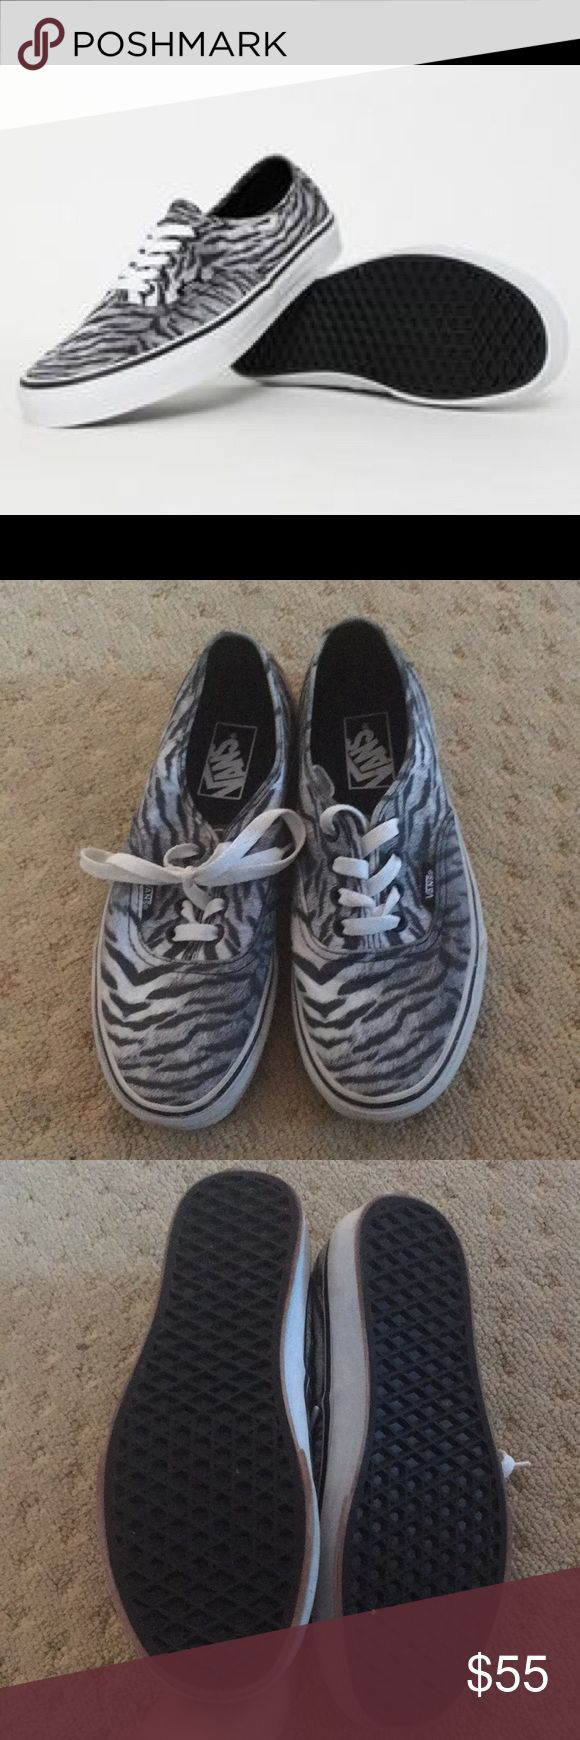 Black and white tiger print unisex  classic vans Tiger print black and white classic vans  Classic black and white vans  Tiger print  Unisex tiger pattern vans  Women's 7.5 Men's size 6  Make an offer if interested Vans Shoes